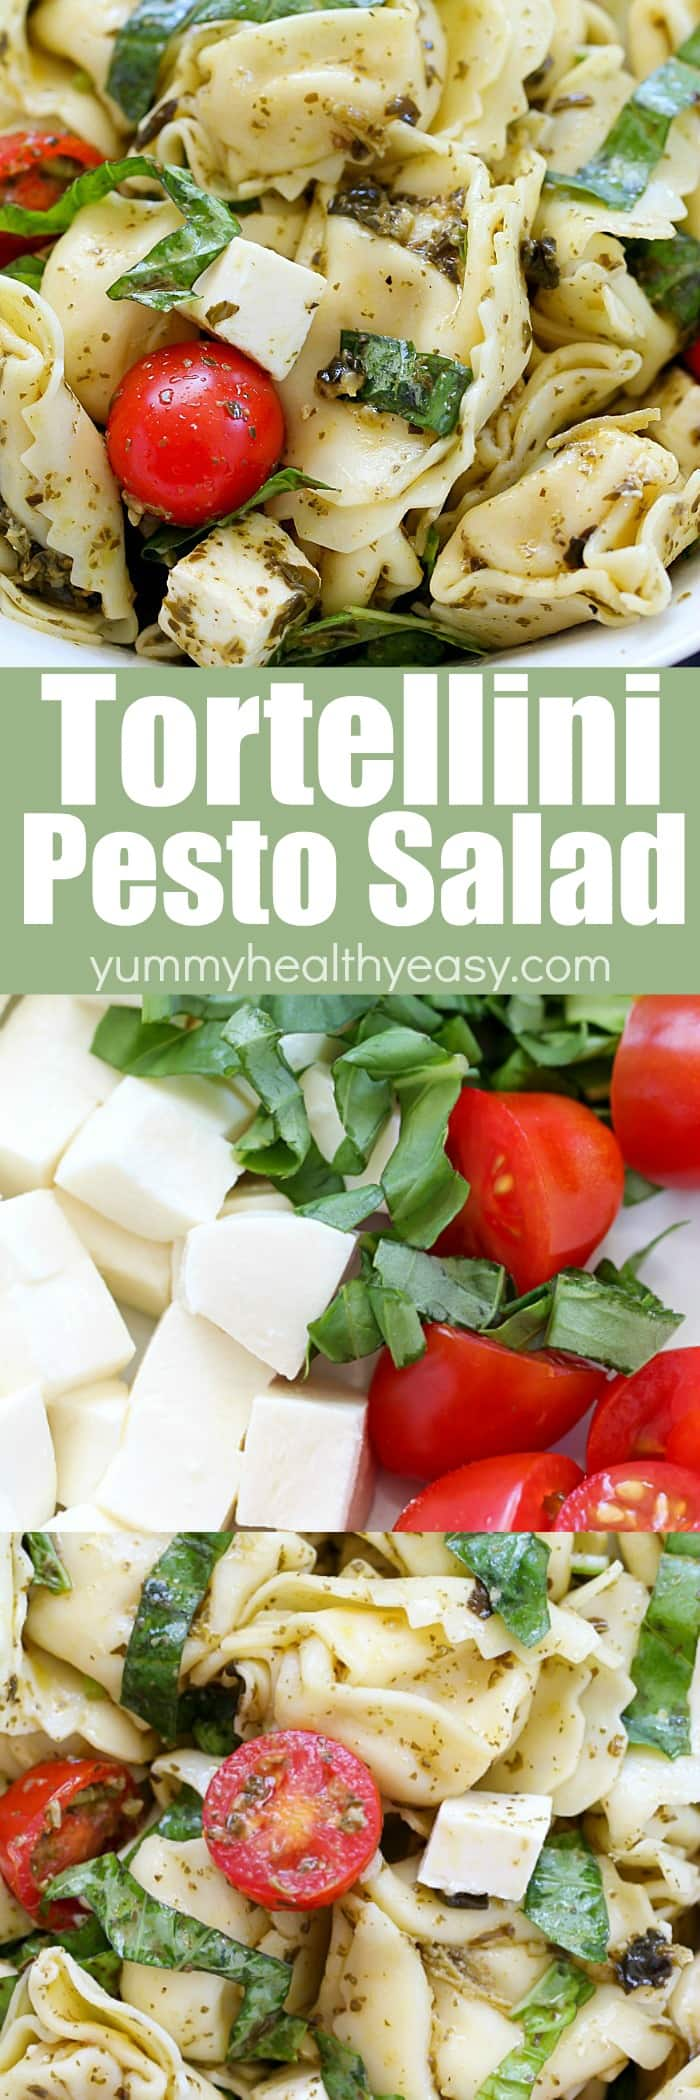 This Easy Tortellini Pesto Salad will quickly become a family favorite pasta salad side dish! So yummy!